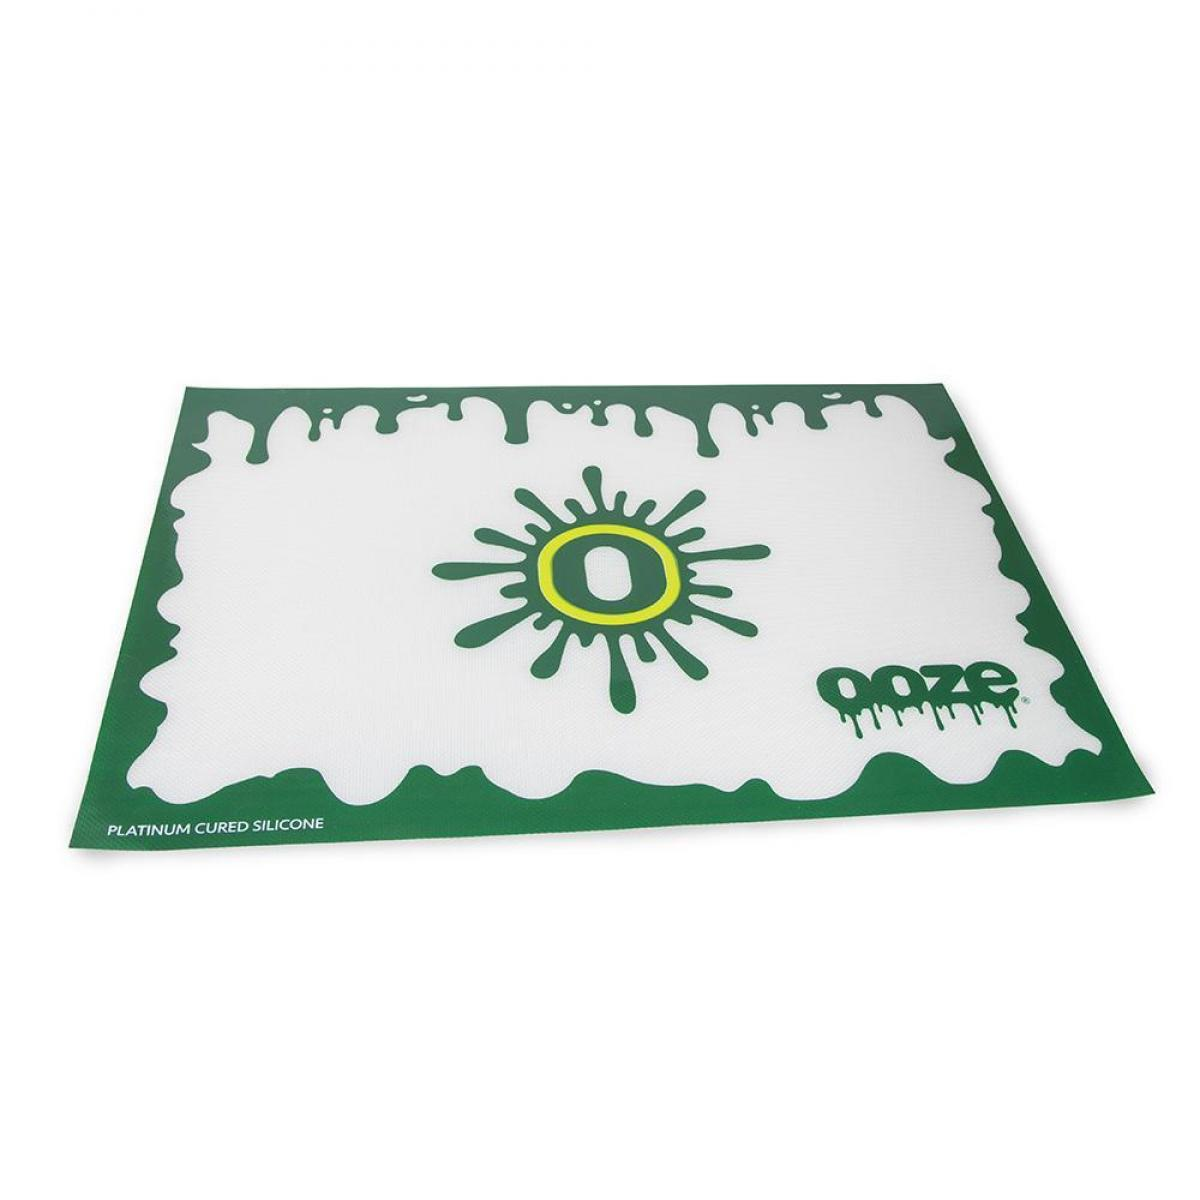 Ooze Silicone Dab Mat XL - 24 x 16